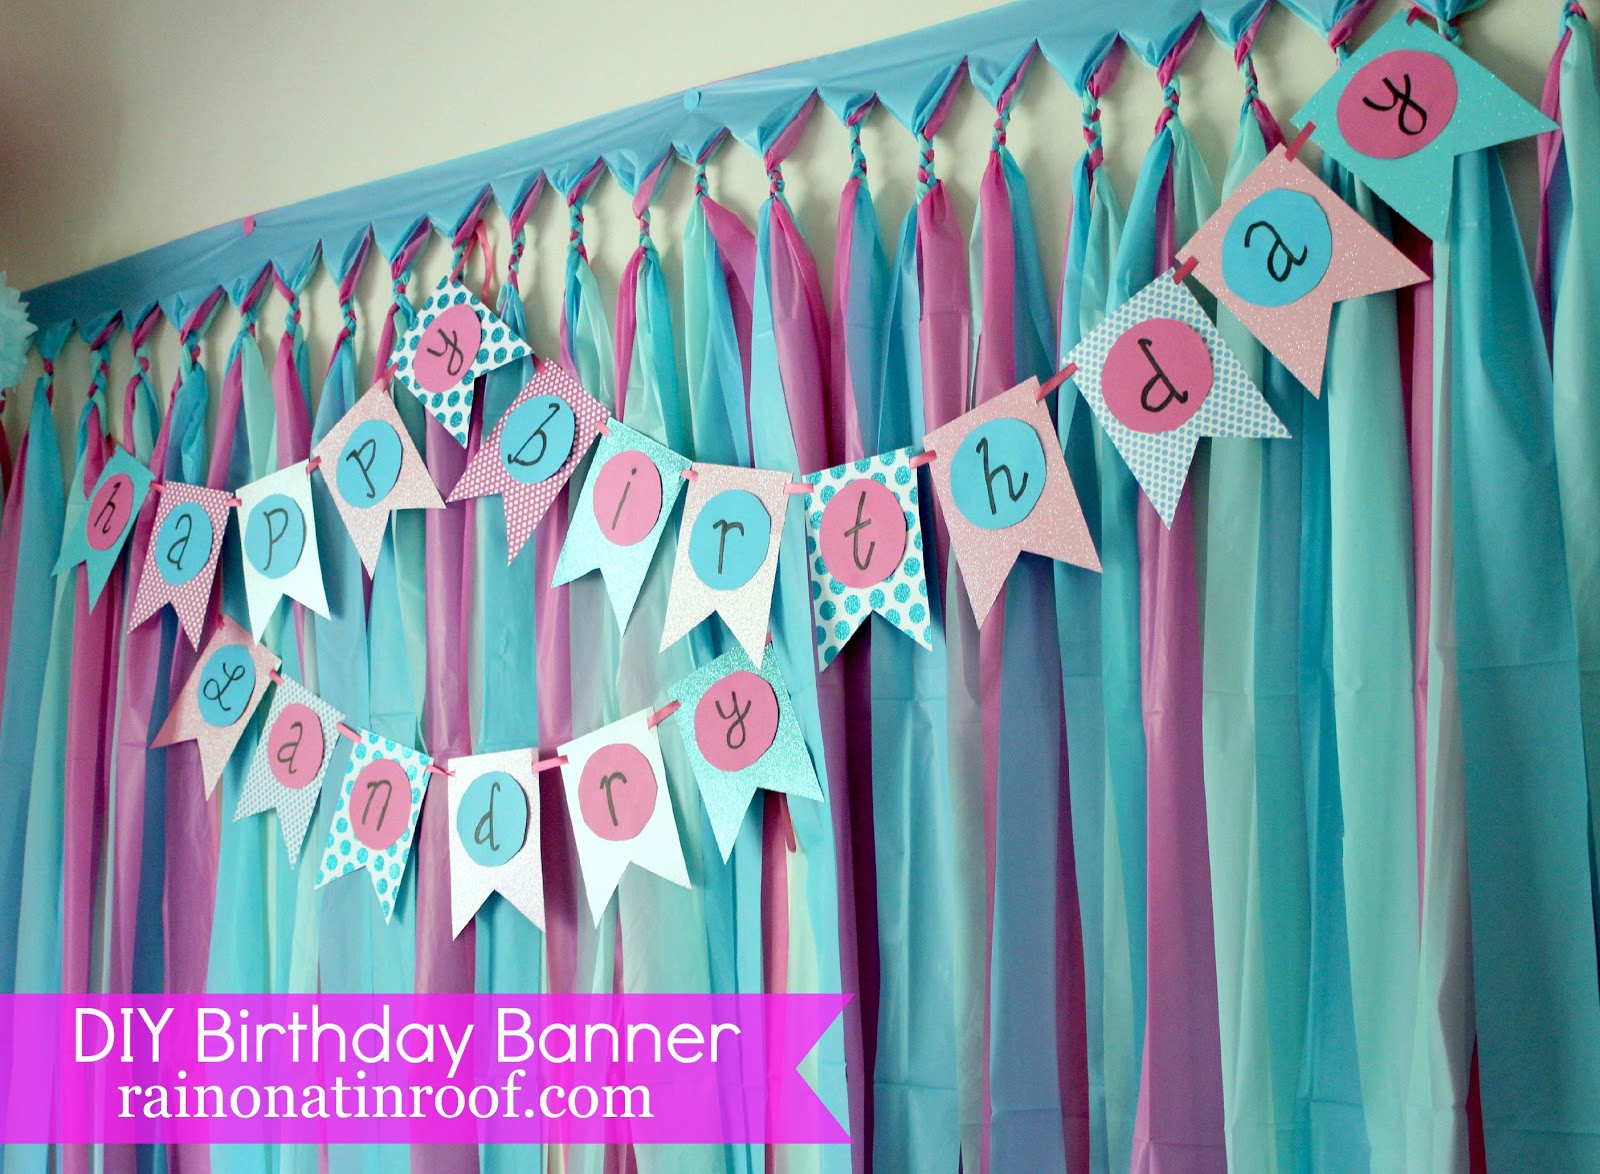 Best ideas about Diy Birthday Decor . Save or Pin Easiest Ever DIY Birthday Banner Part 2 Rain on a Tin Roof Now.